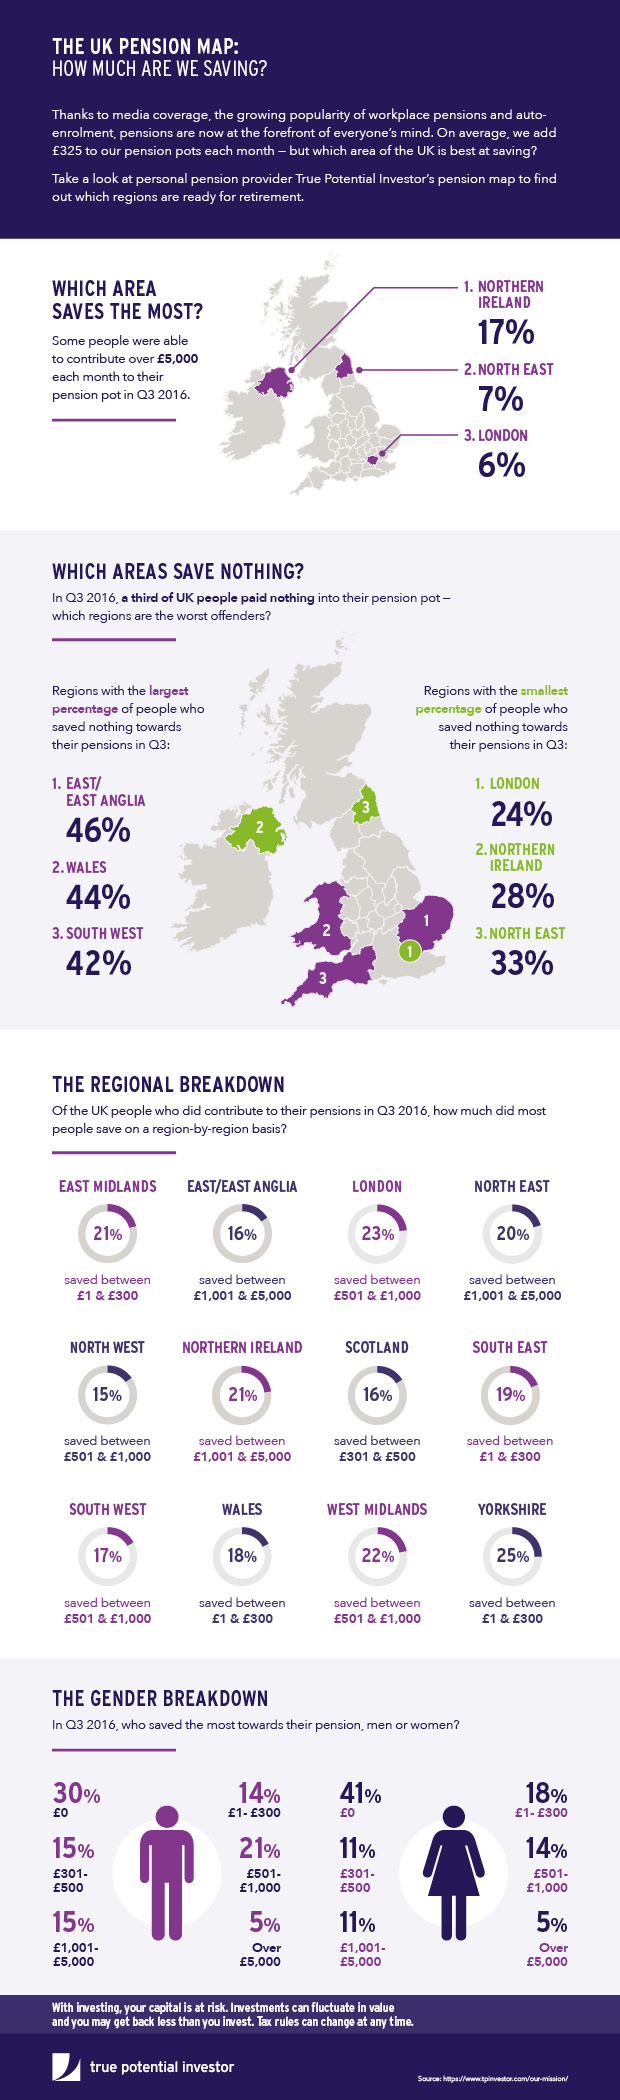 True Potential Investor - UK Pension map (1)